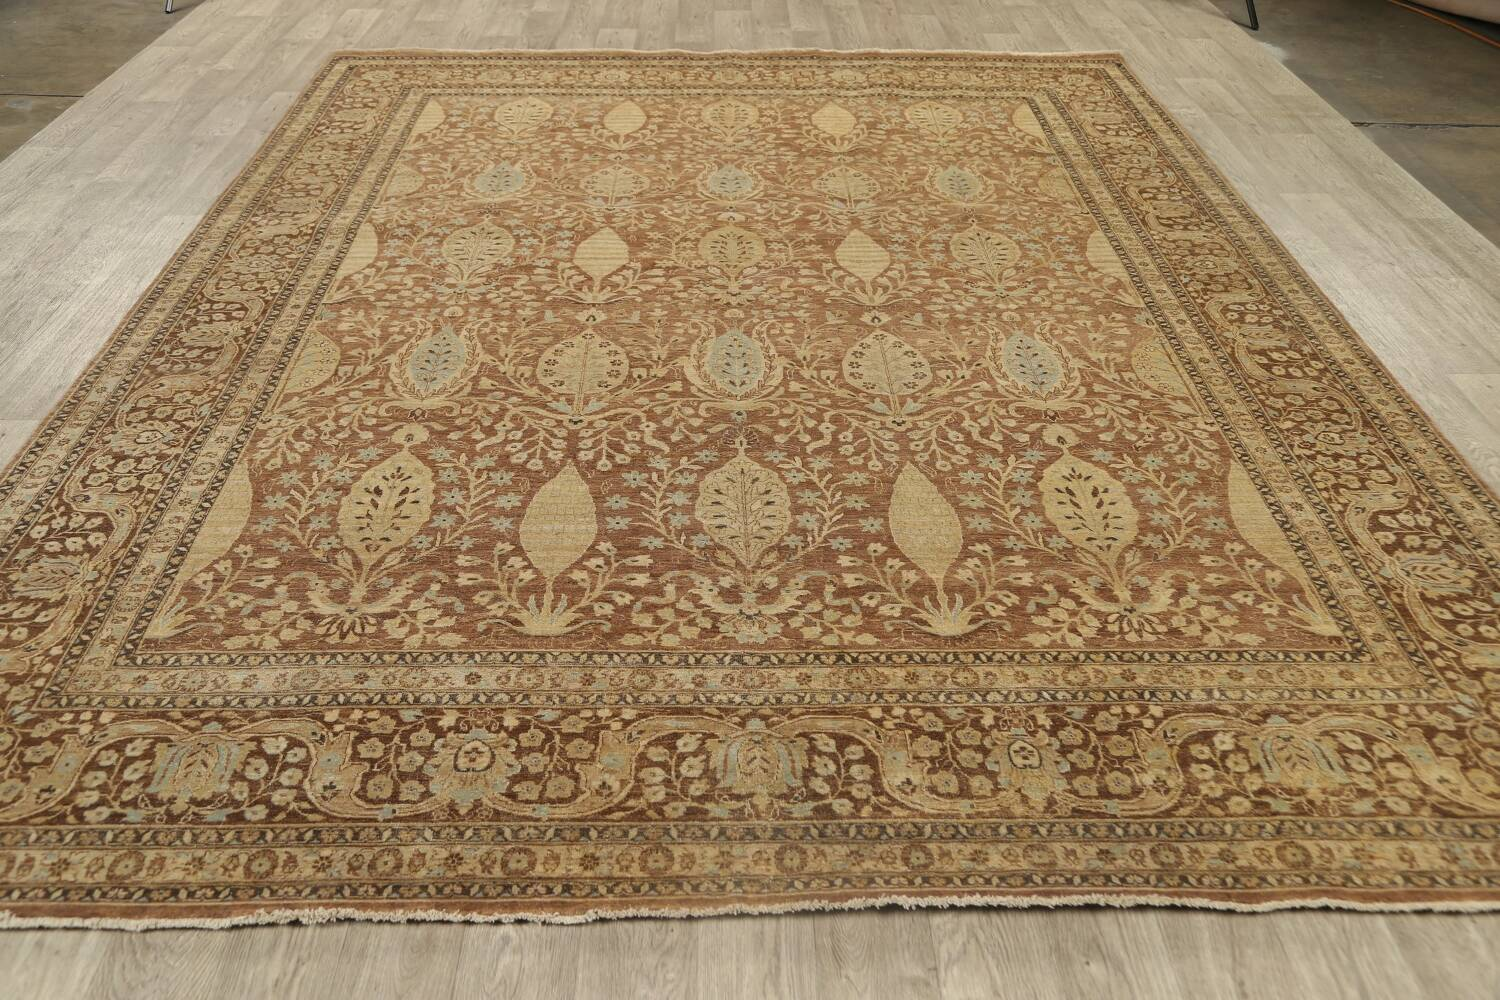 100% Vegetable Dye Floral Kashan Oriental Area Rug 9x12 image 17